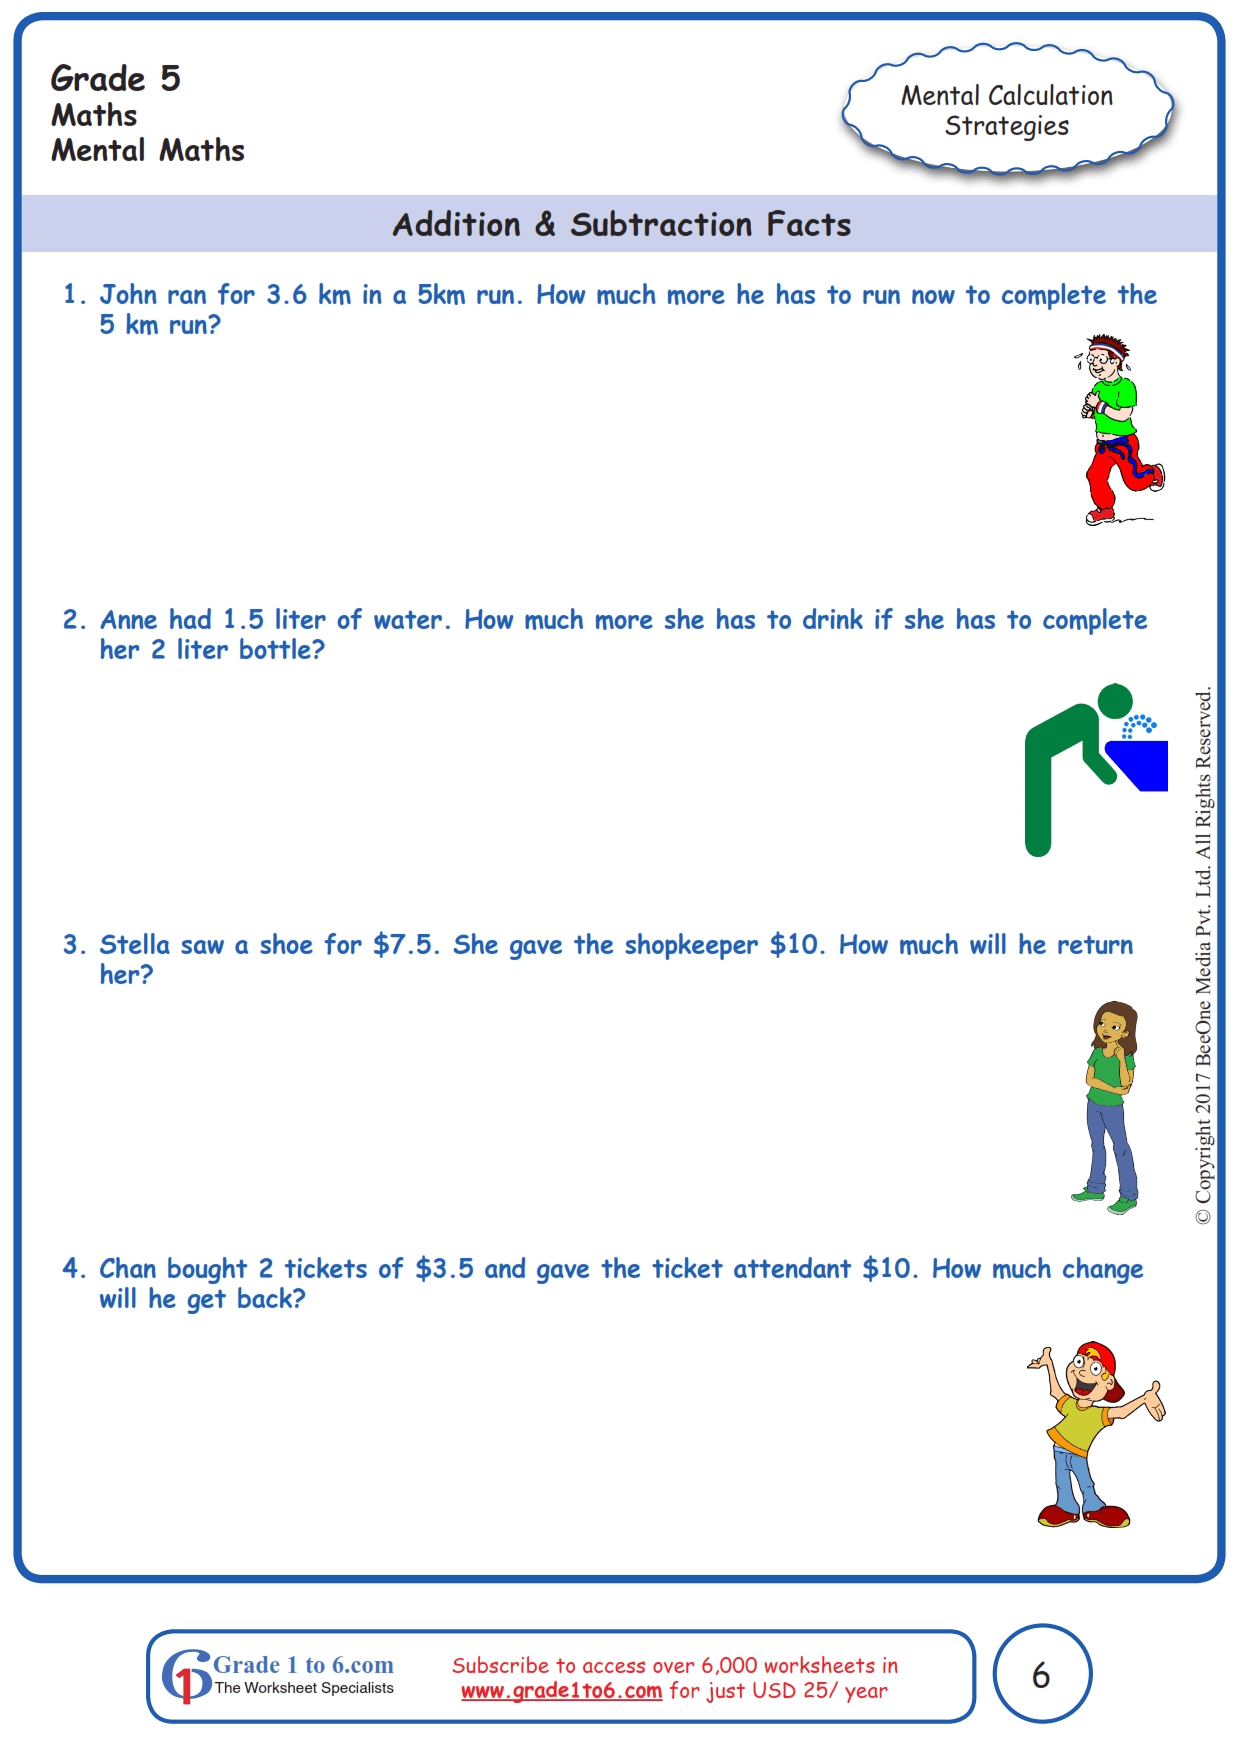 hight resolution of Grade 5 Mental Math Addition Worksheets www.grade1to6.com